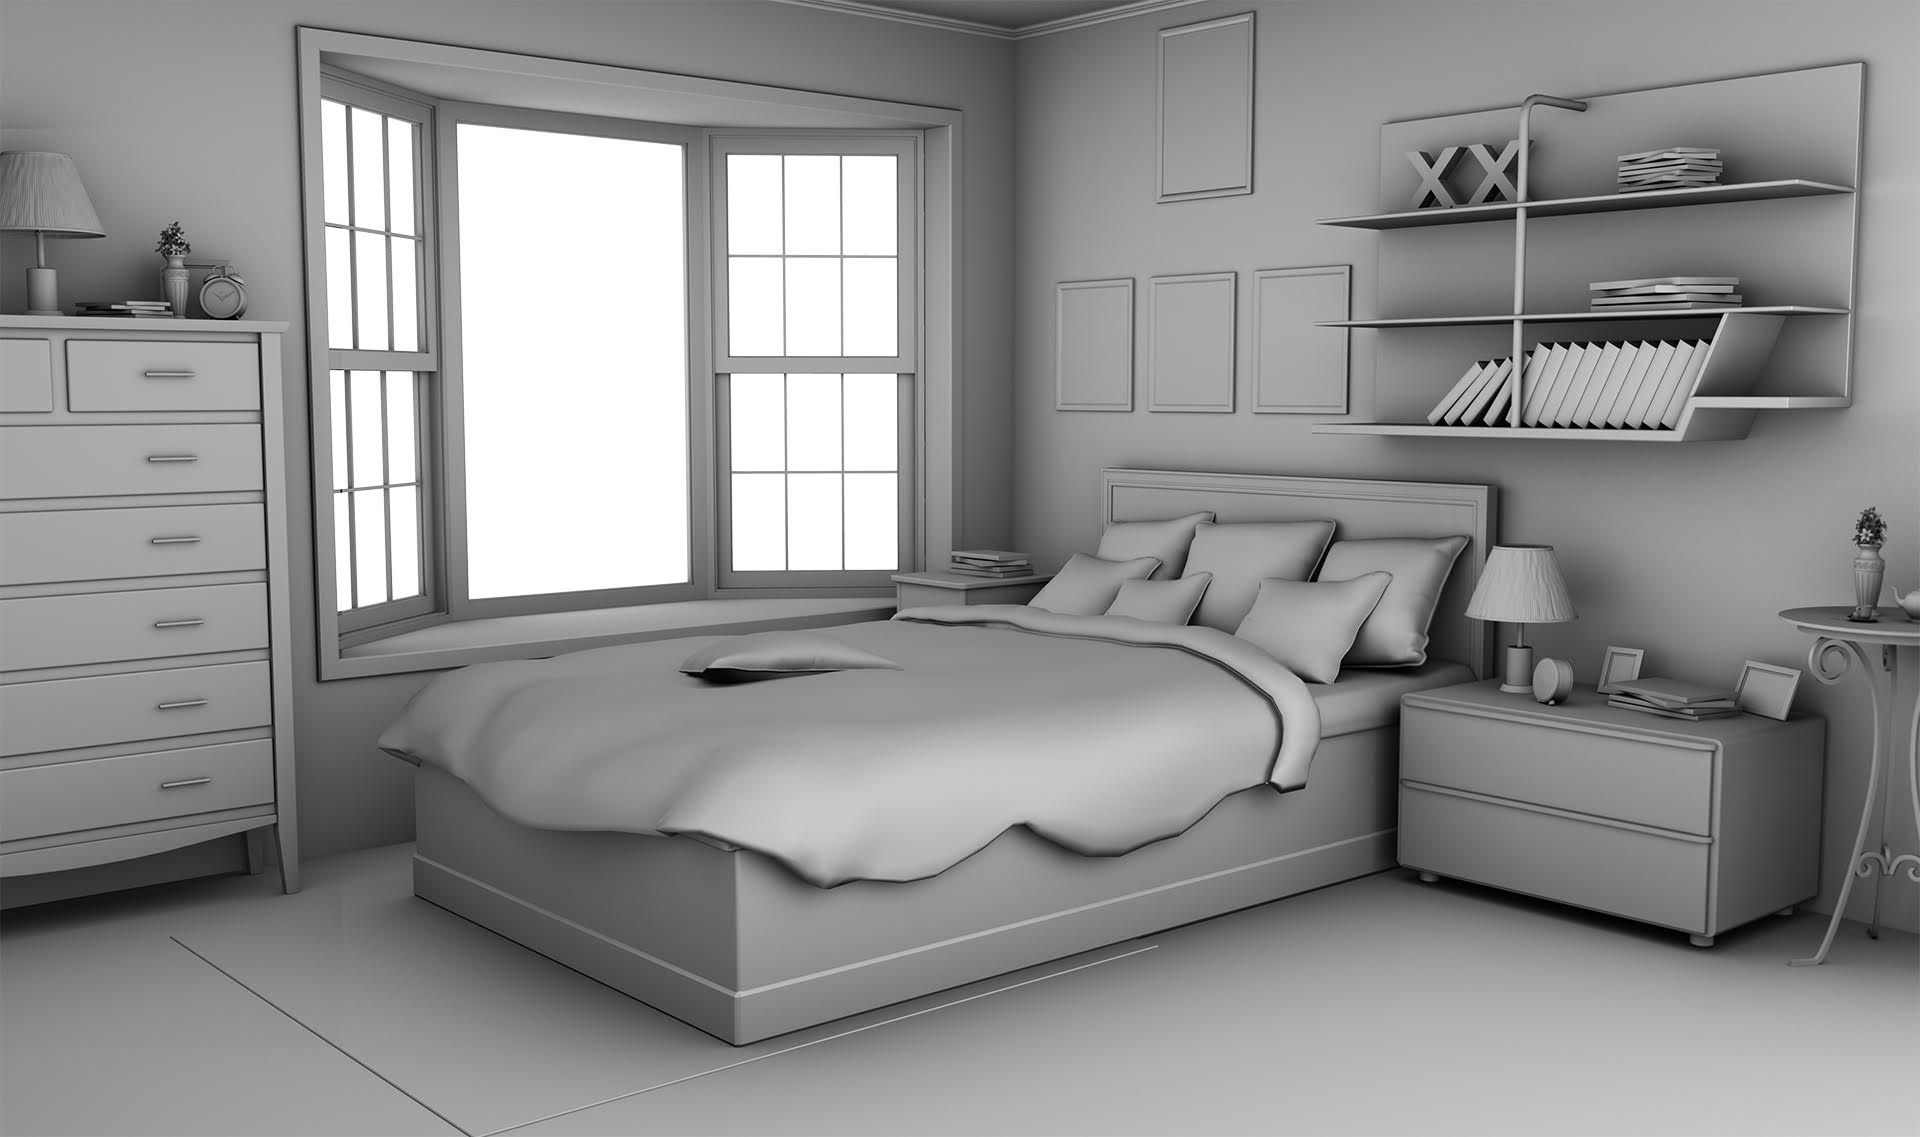 Best Int Demi Nice Bedroom Day Episode Backgrounds 400 x 300